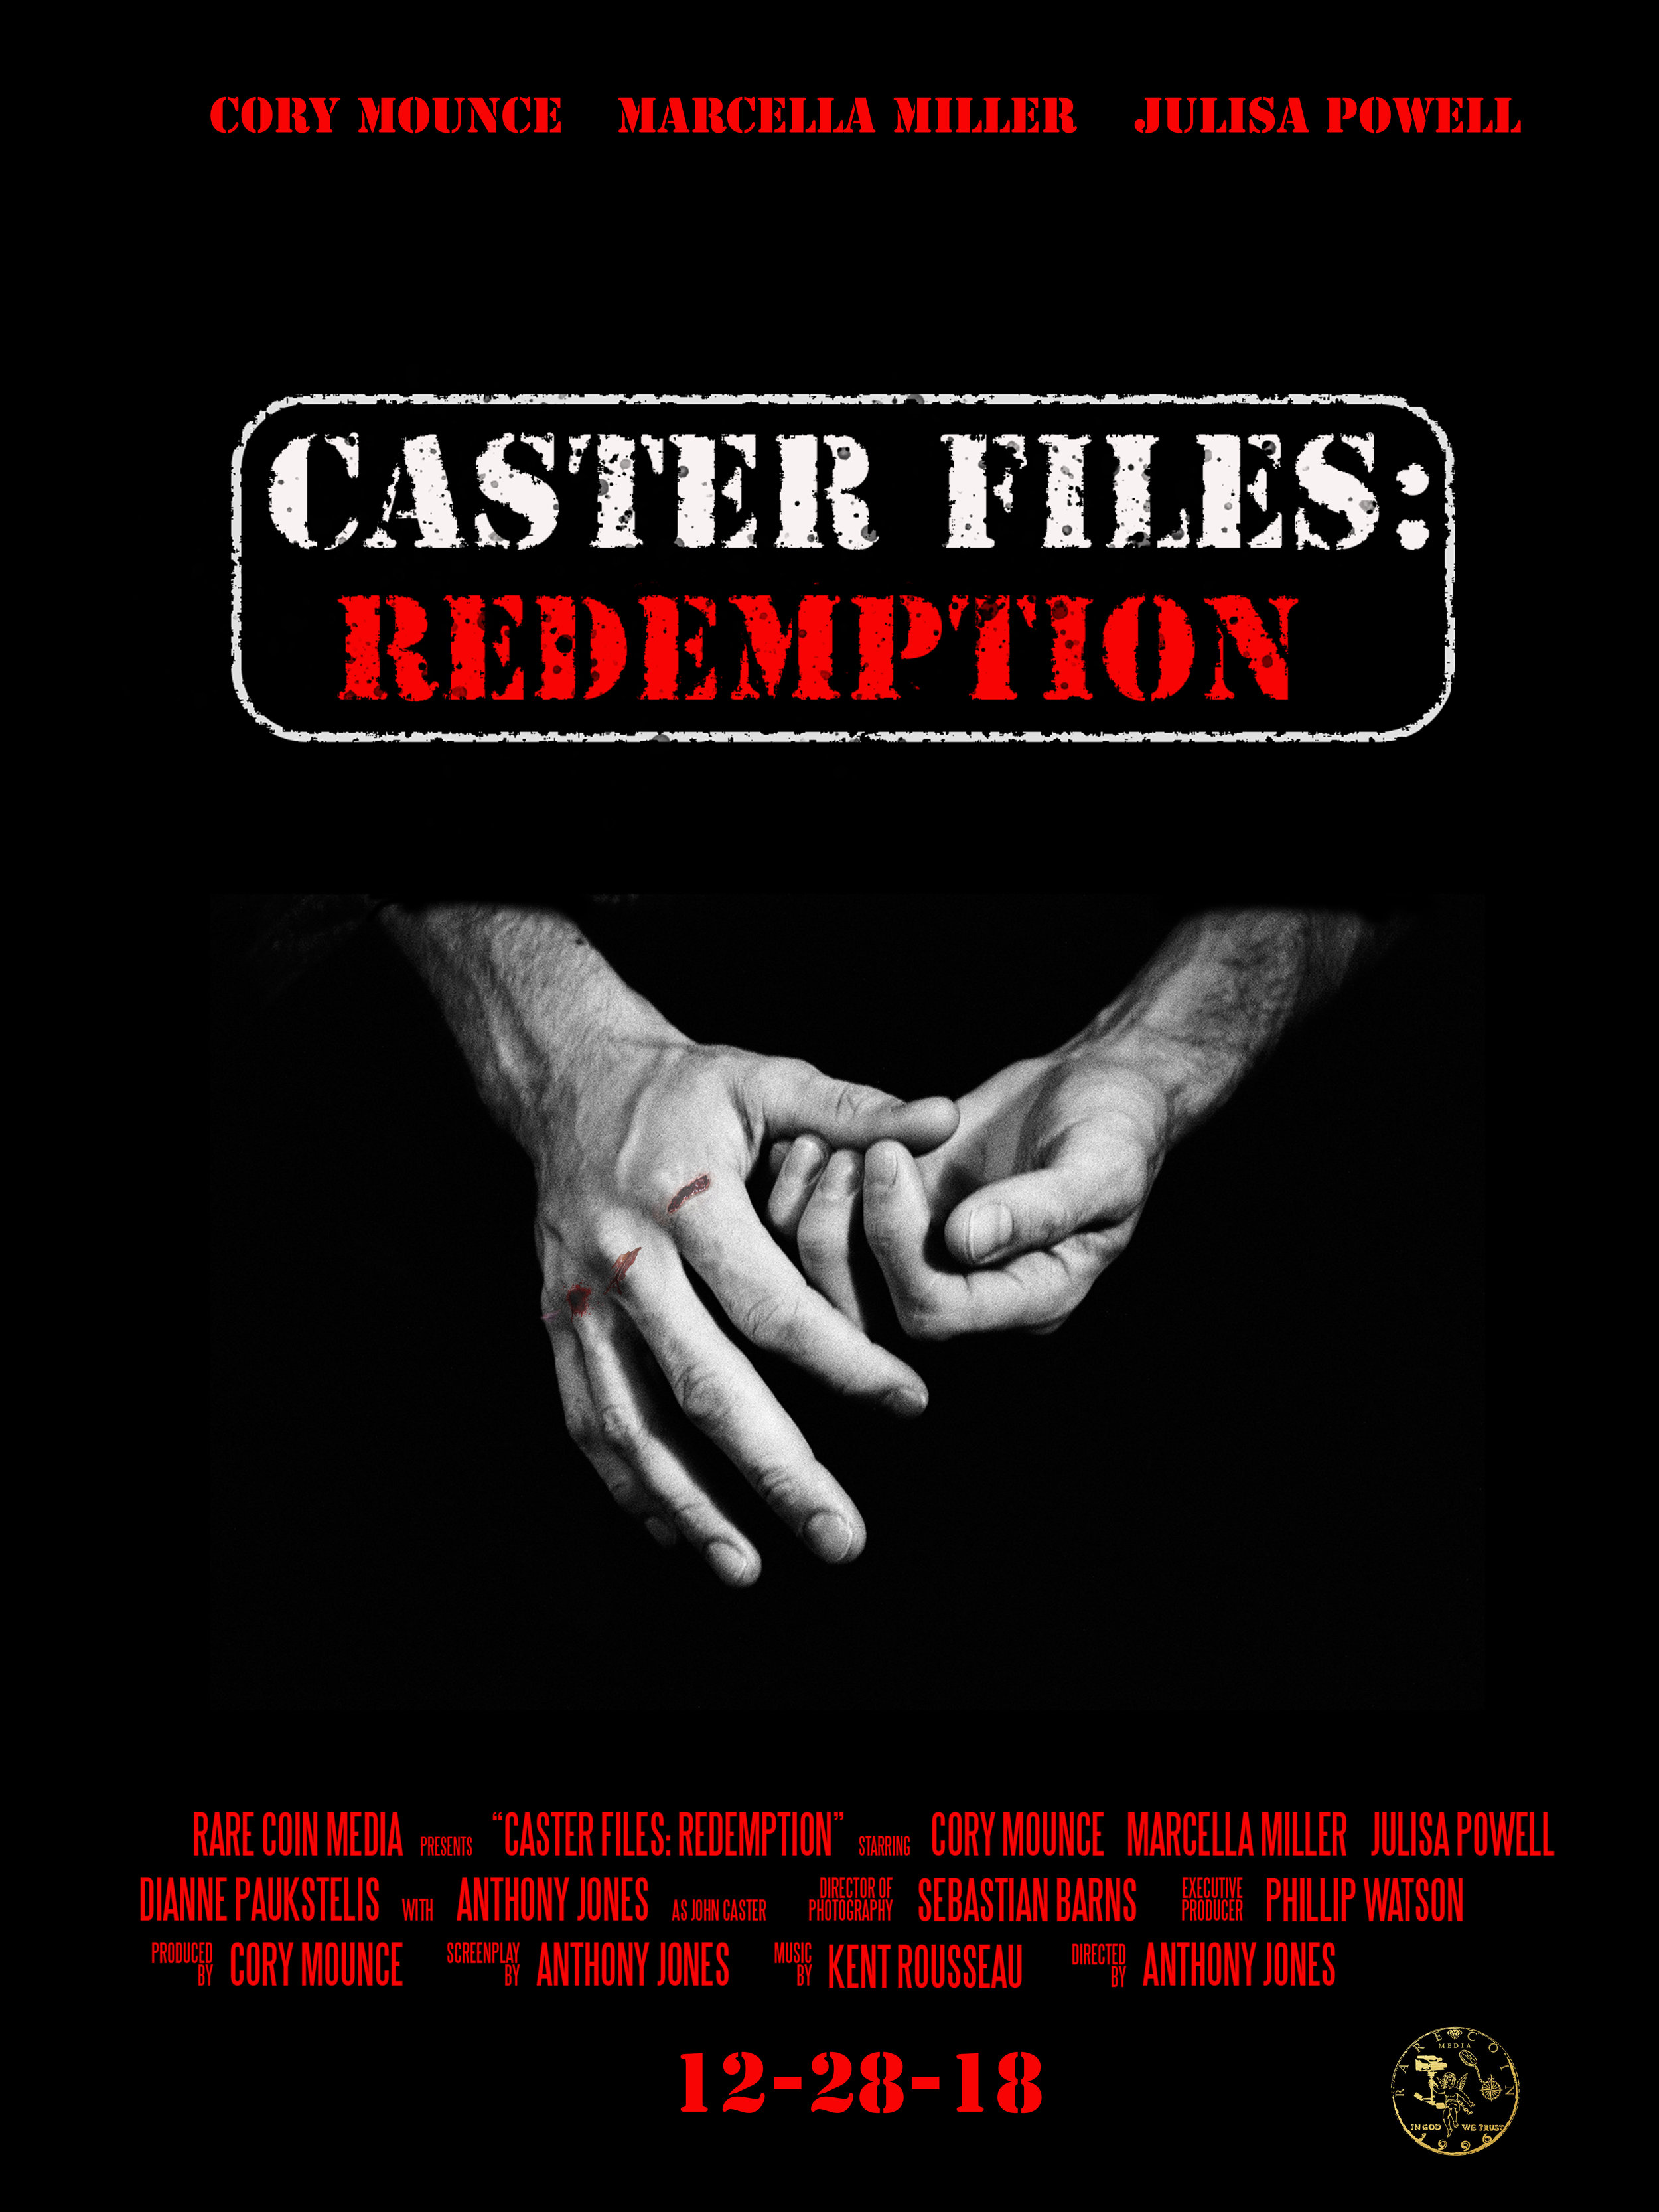 "Caster Files: Redemption - Caster Files: Redemption [2018] {Short Film} - Producer, Writer, Director [post-production]For all of you who have asked for more John Caster we give you Caster Files Redemption! While no, it isn't a direct sequel, we still are proud to add this as the next chronological story in the ""Casterverse""!Caster Files: Redemption takes place a couple months after John Caster. The film is centered on James who is tricked into a therapy session to talk about an incident that happened a week prior."